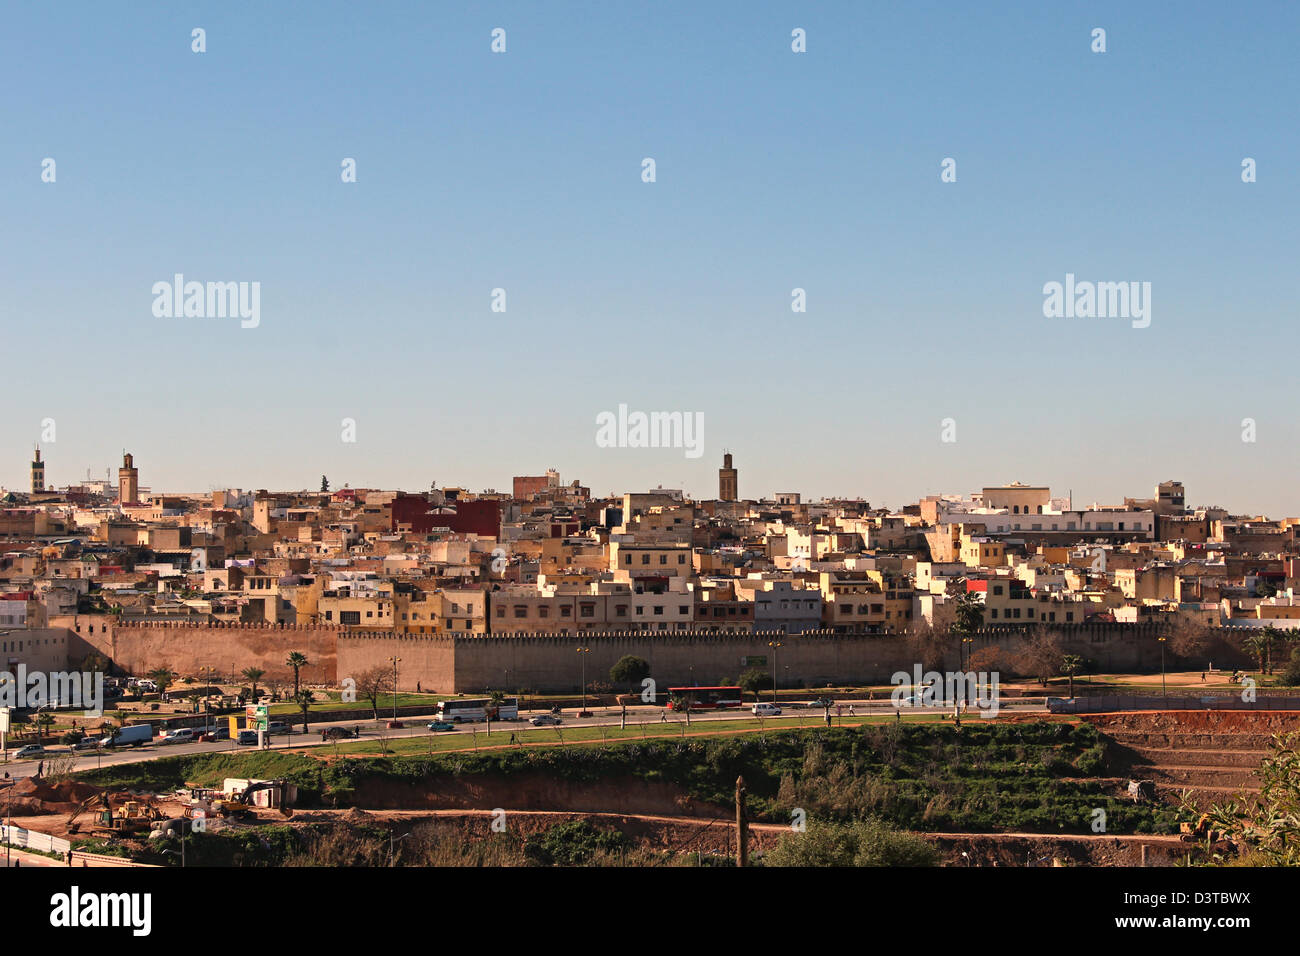 The city is surrounded by a ring of triple wall that houses the Sultan's palace and a citadel Almohad. Meknes - Stock Photo